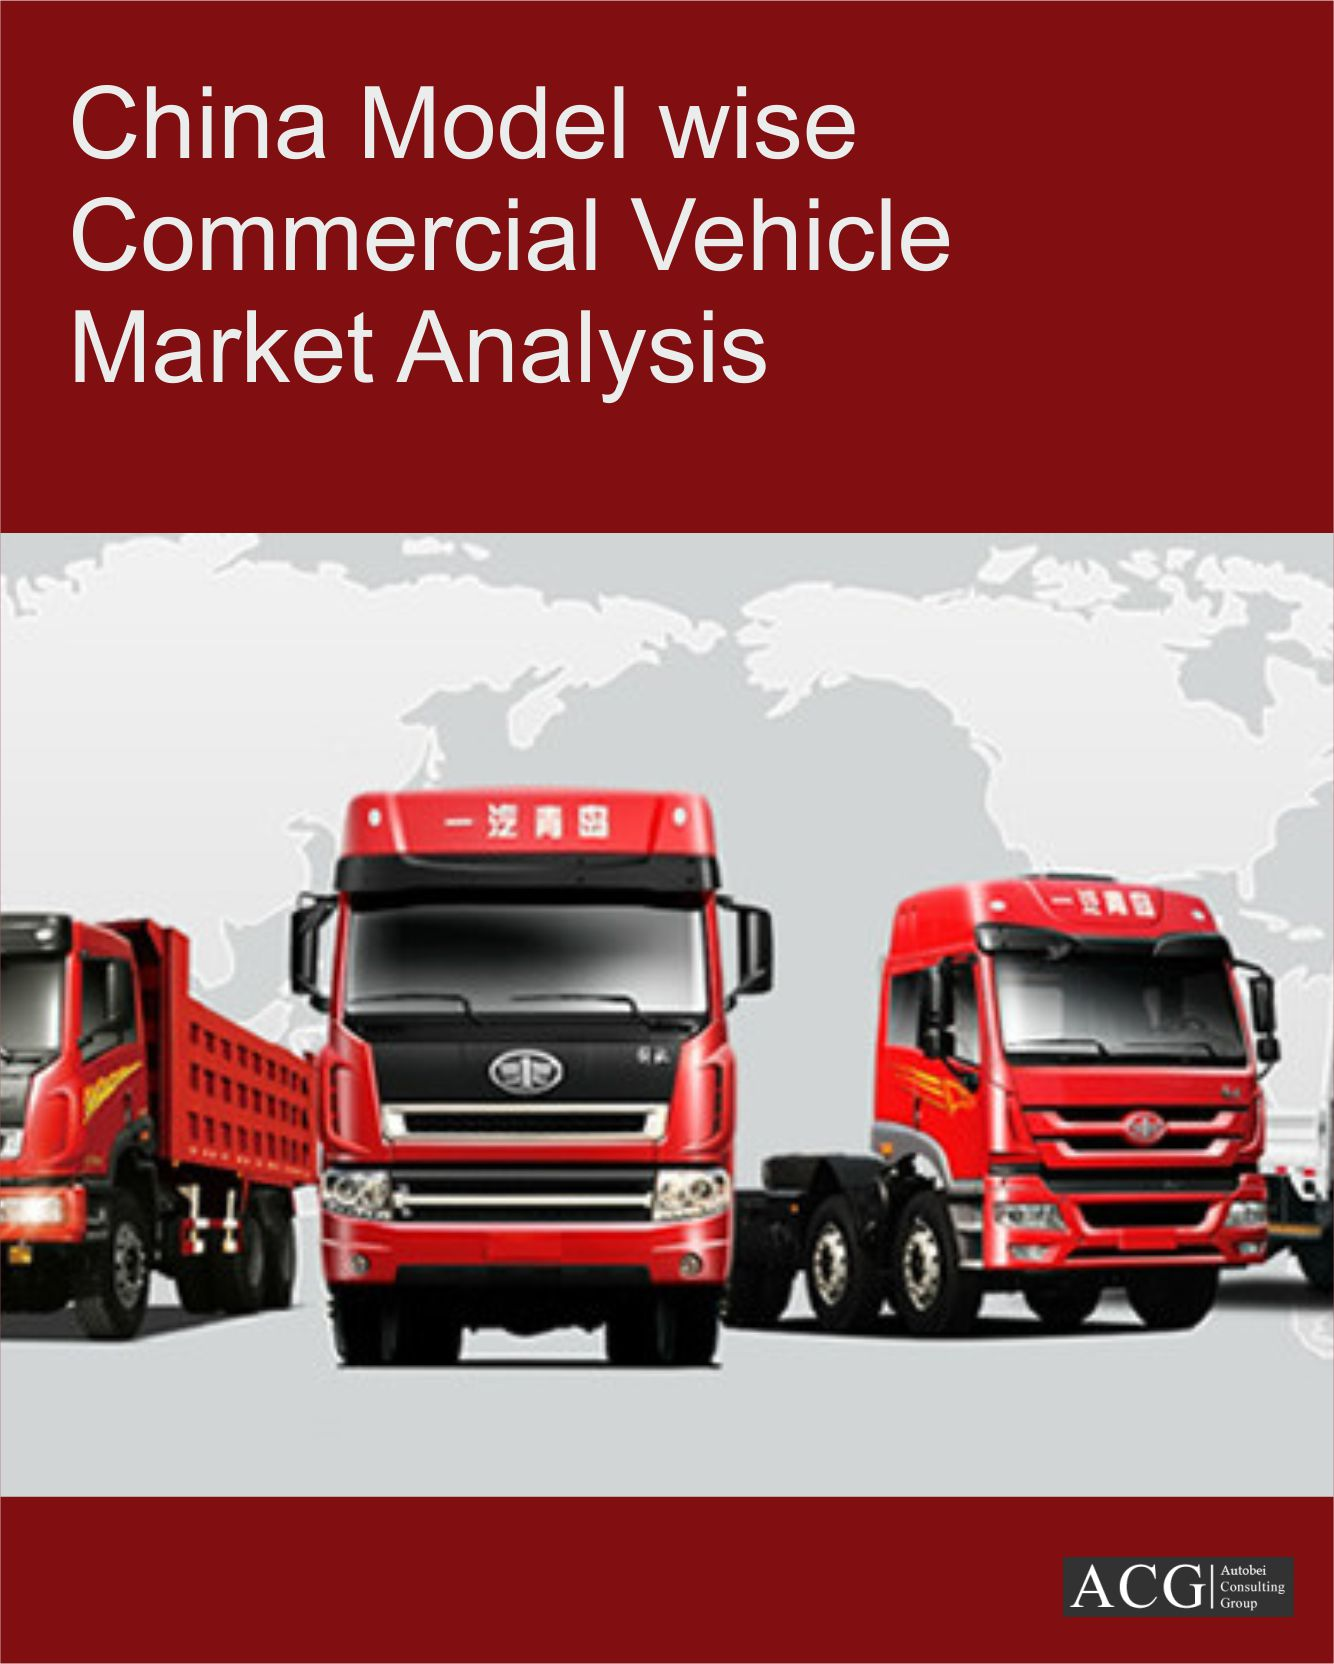 China Model wise Commercial Vehicle Production Trend and forecast